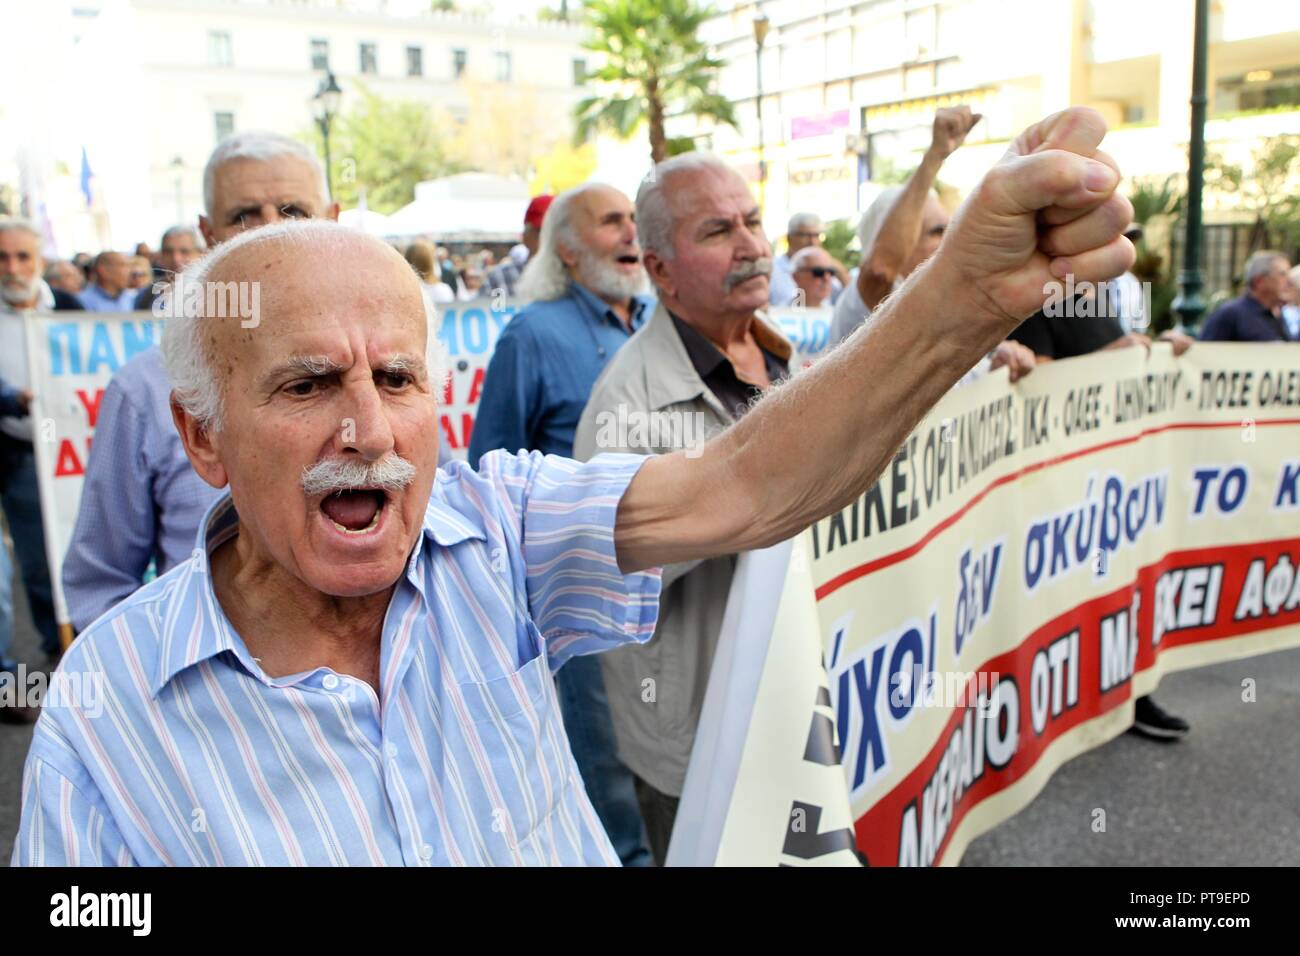 Pensioners take part in a rally outside the Labor ministry in Athens. Hundreds of pensioners demonstrated Thursday against more austerity measures pla - Stock Image